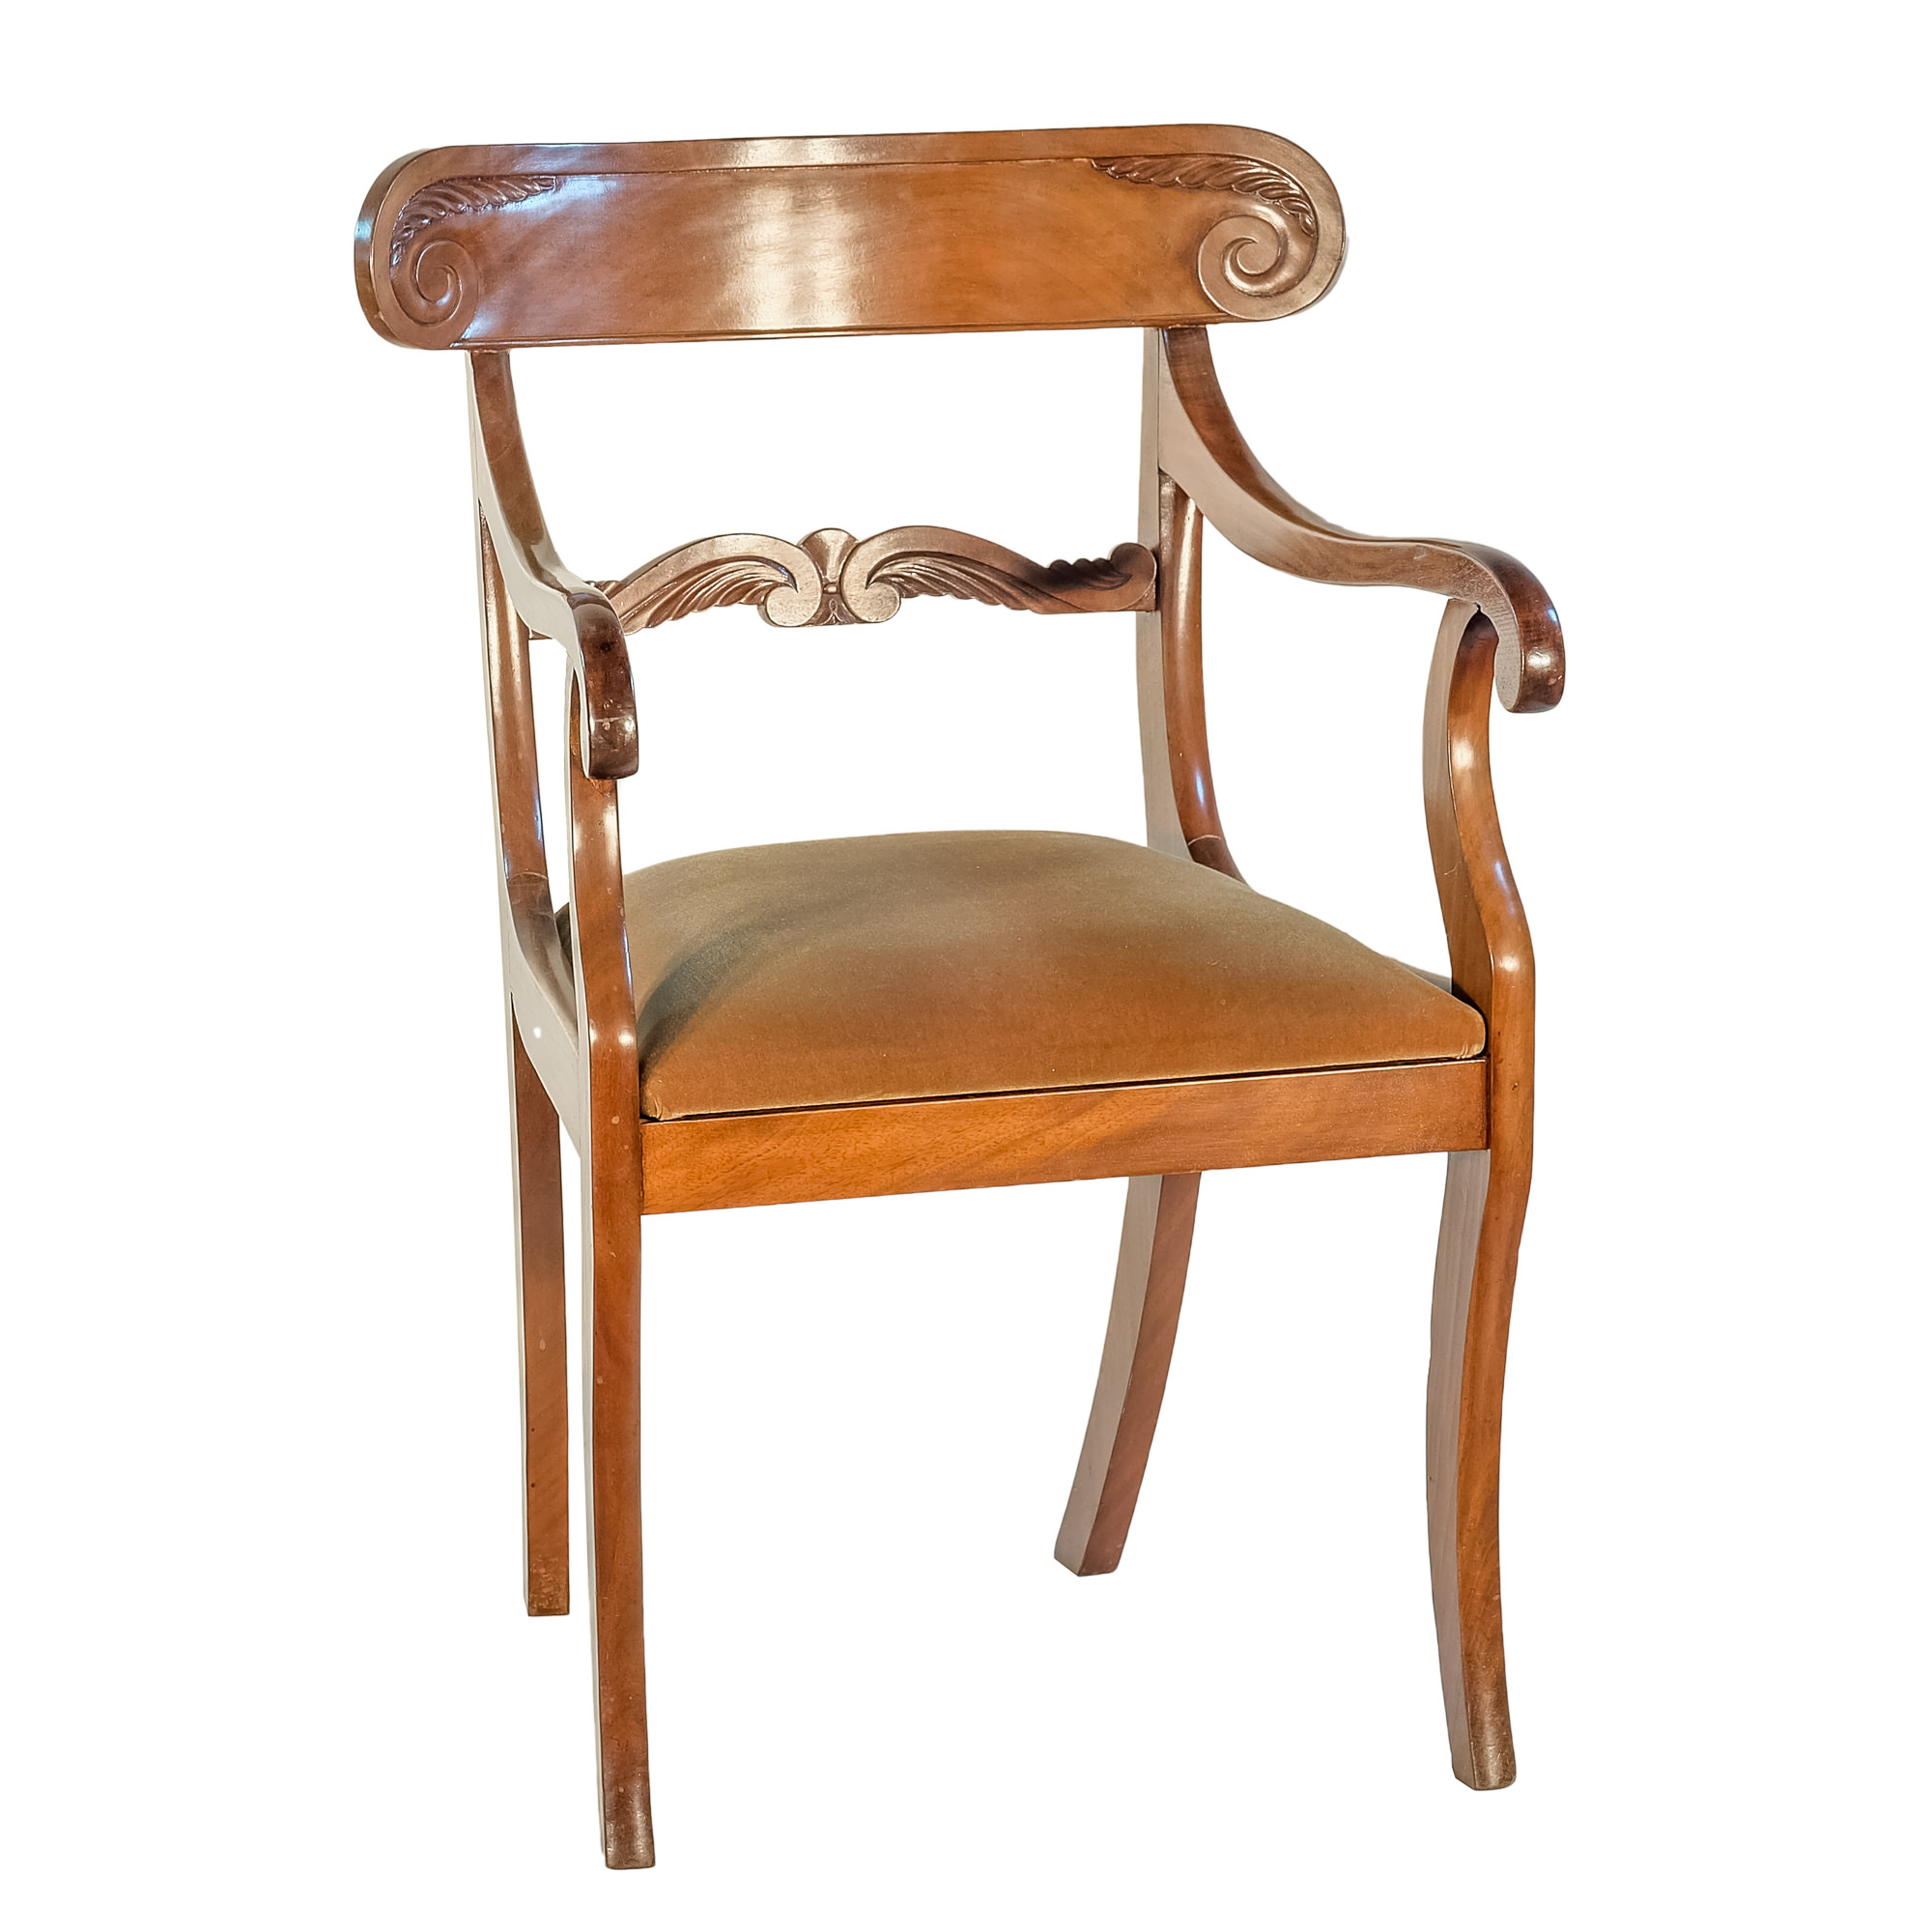 'William IV Mahogany Sabre Leg Elbow Chair with Brown Velvet Seat Circa 1835'